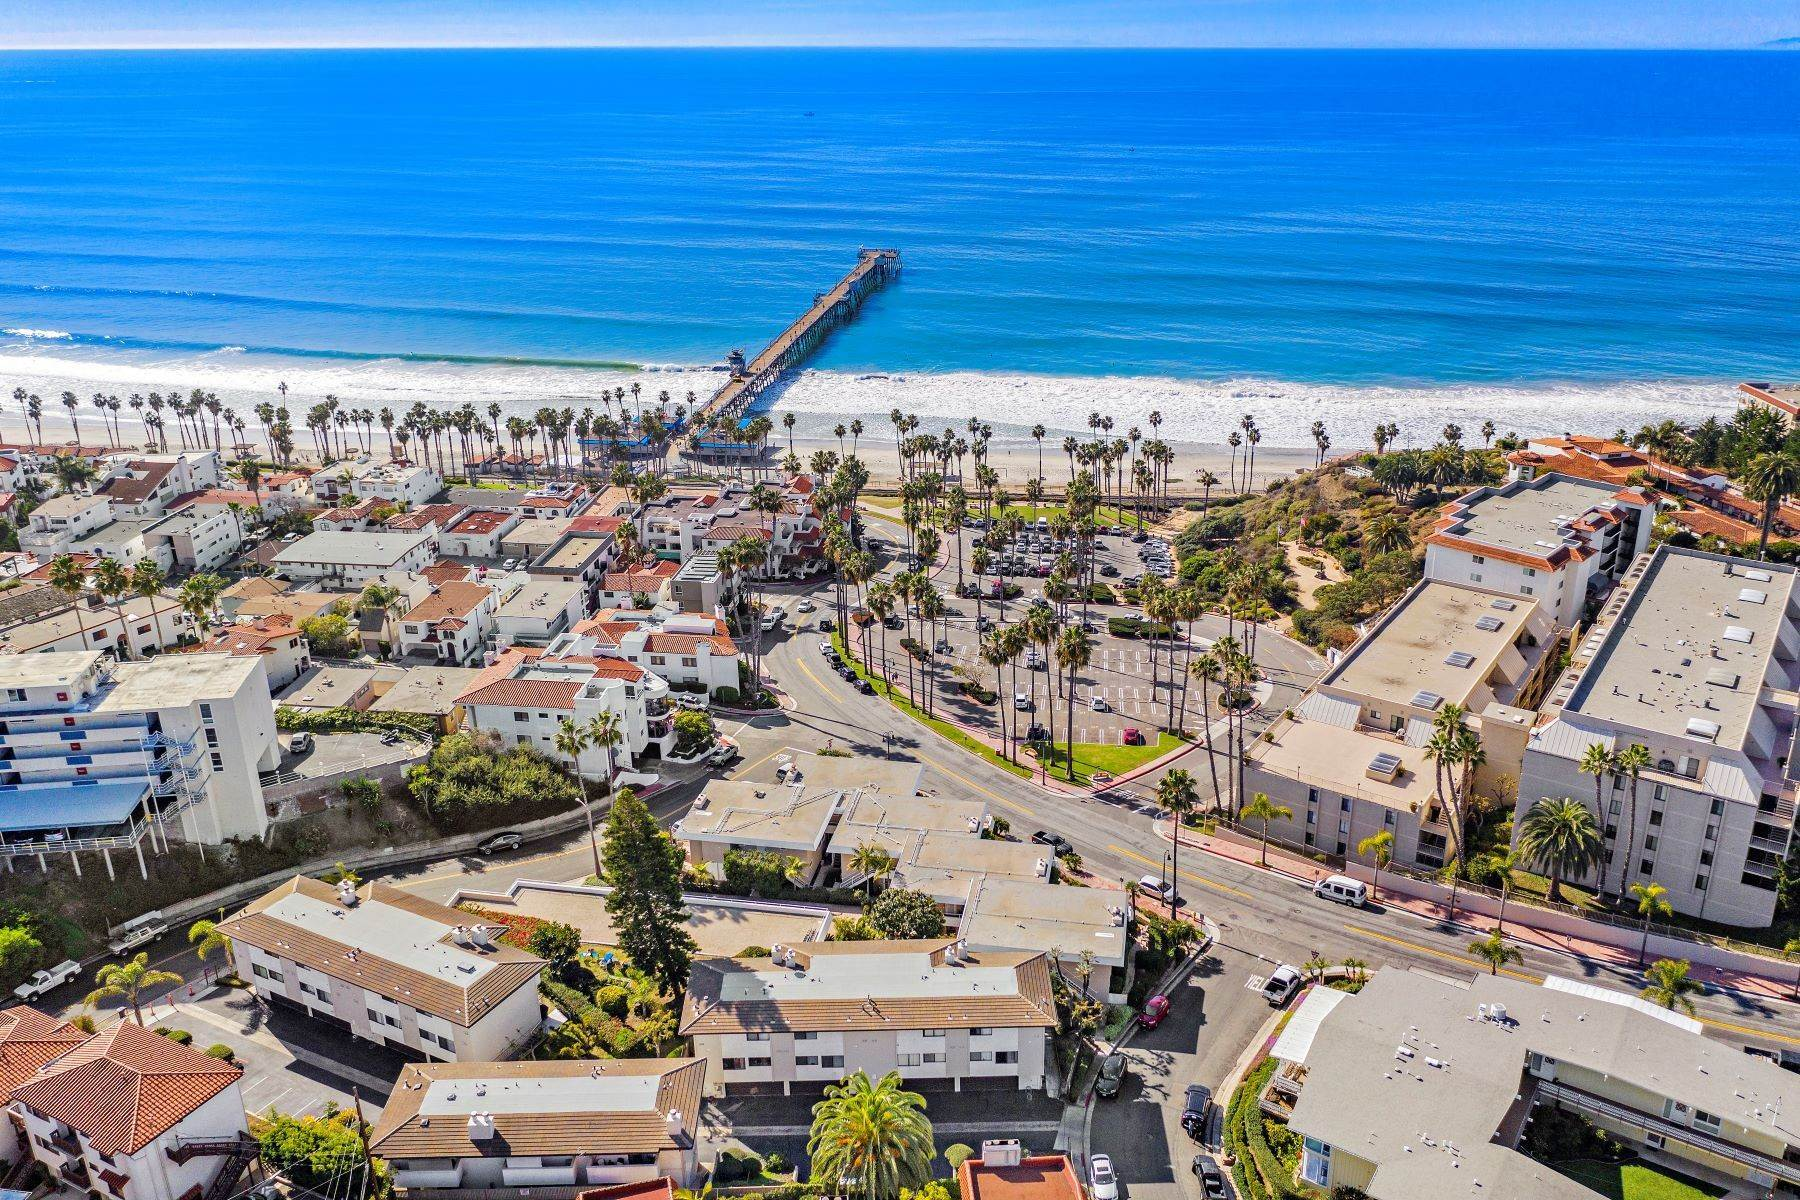 37. Condominiums for Sale at 321 Acebo Lane Unit #C, San Clemente, CA 92672 321 Acebo Lane, Unit #C San Clemente, California 92672 United States